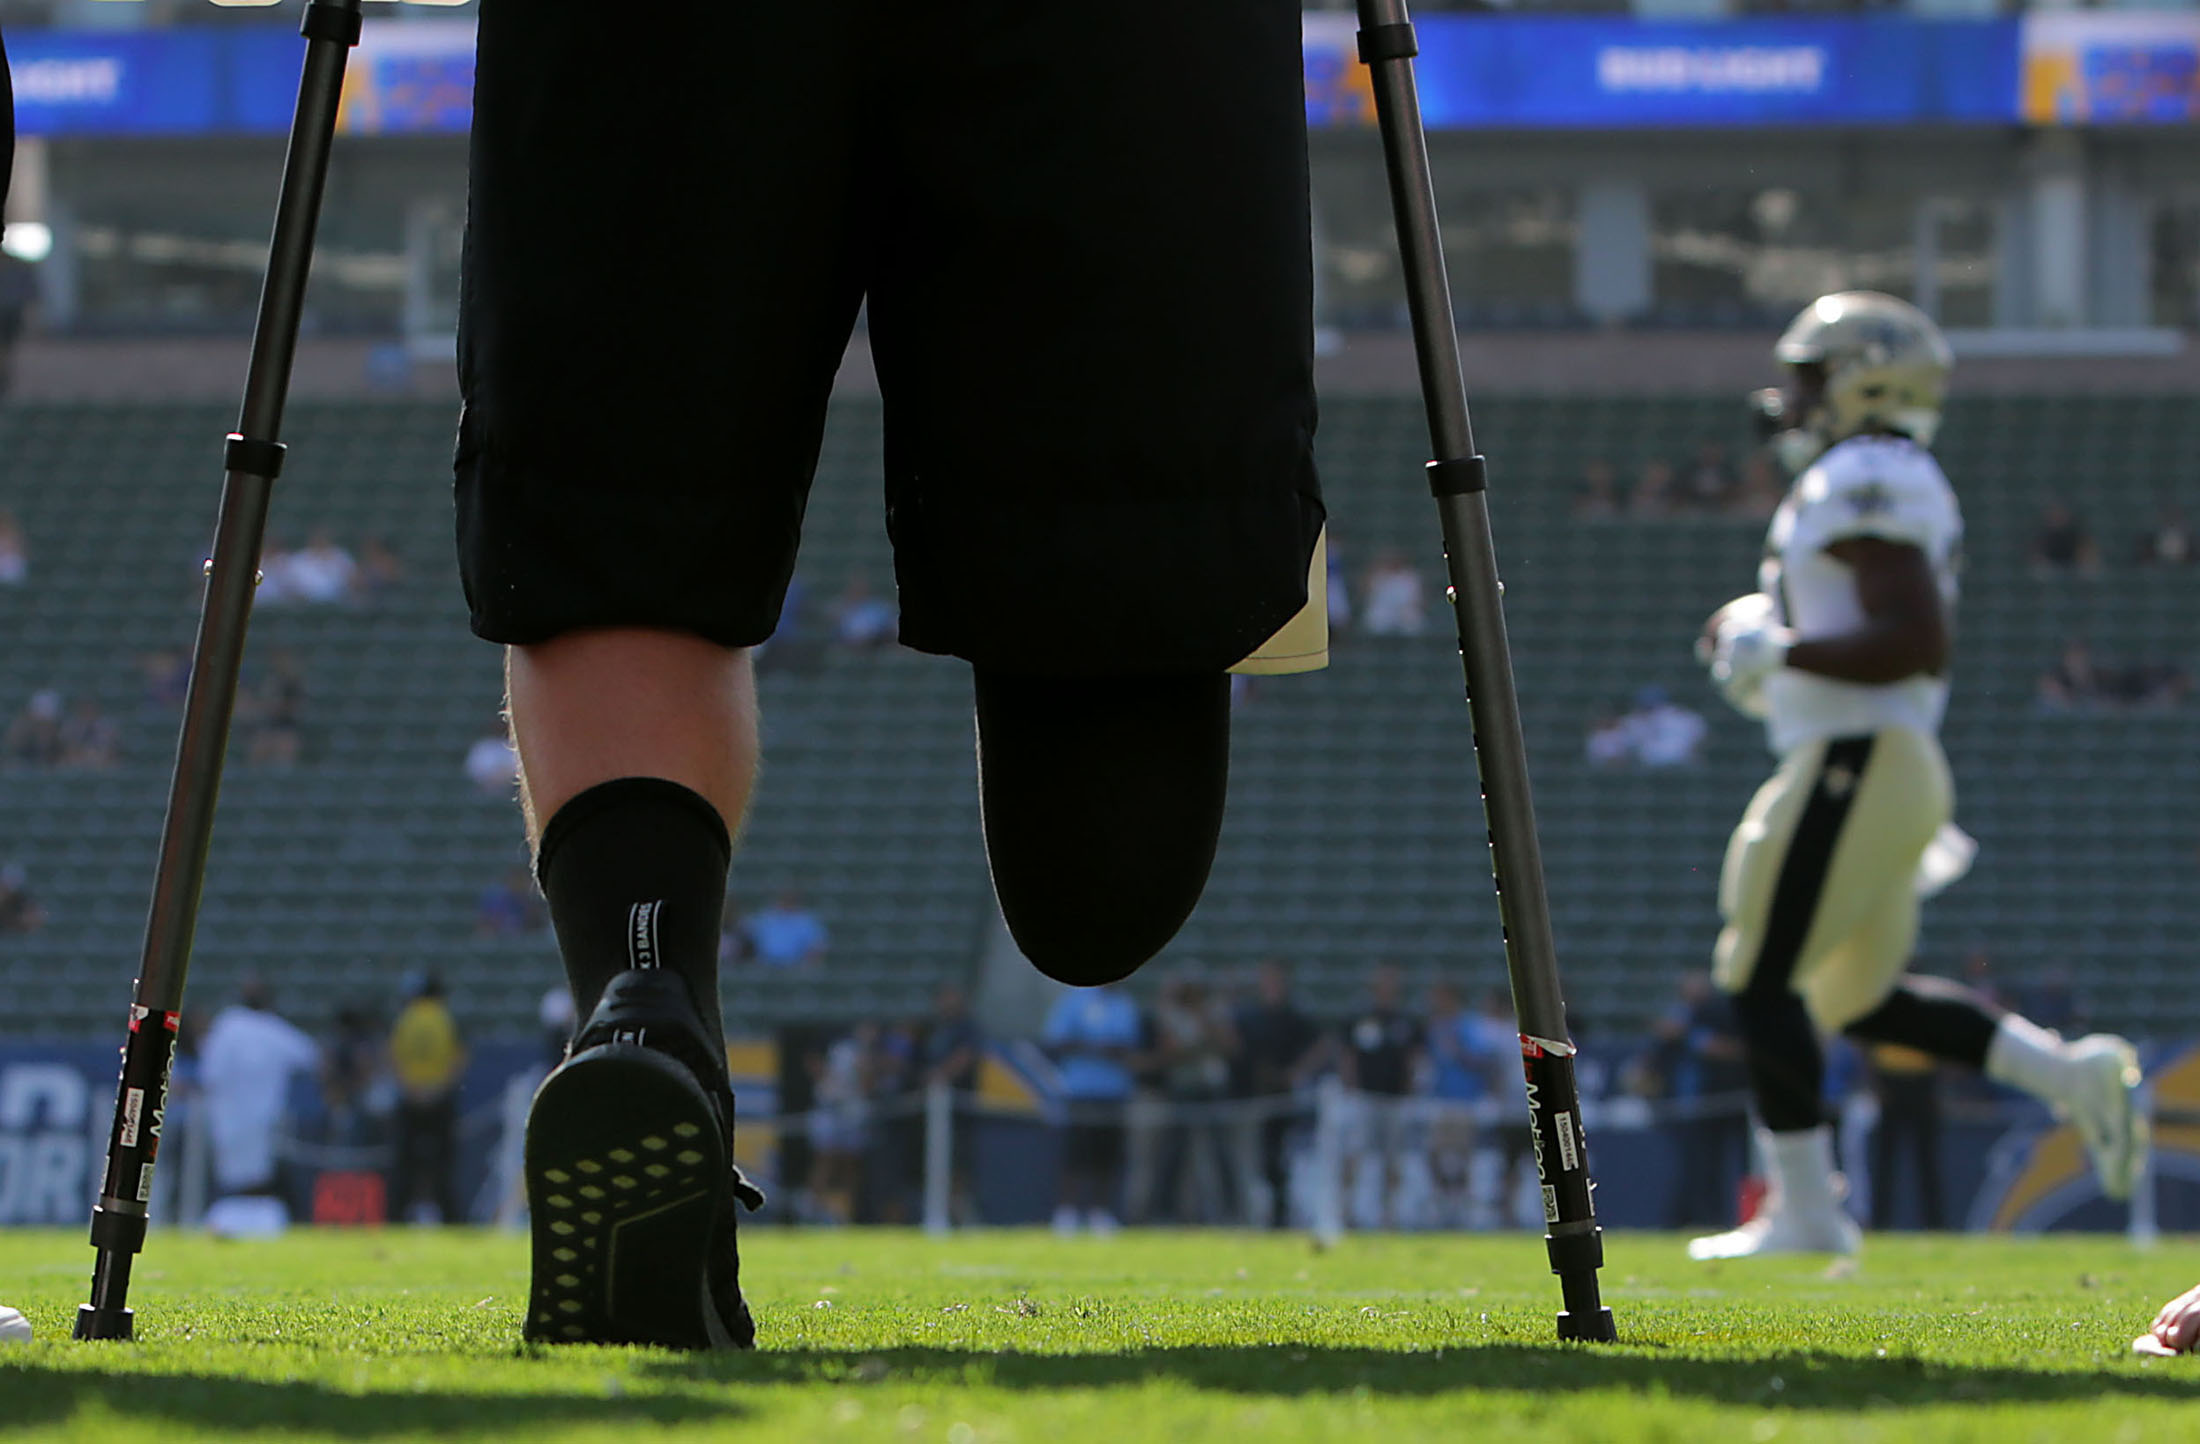 After meeting New Orleans Saints quarterback Drew Brees at practice two days earlier Alex Ruiz, the Temecula high school quarterback who chose to amputate a portion of his right leg after sustaining an on-field injury last year, watches the Saints warmup from the sidelines before the preseason game against the Los Angeles Chargers at StubHub Center  in Carson on Saturday, August 25, 2018.